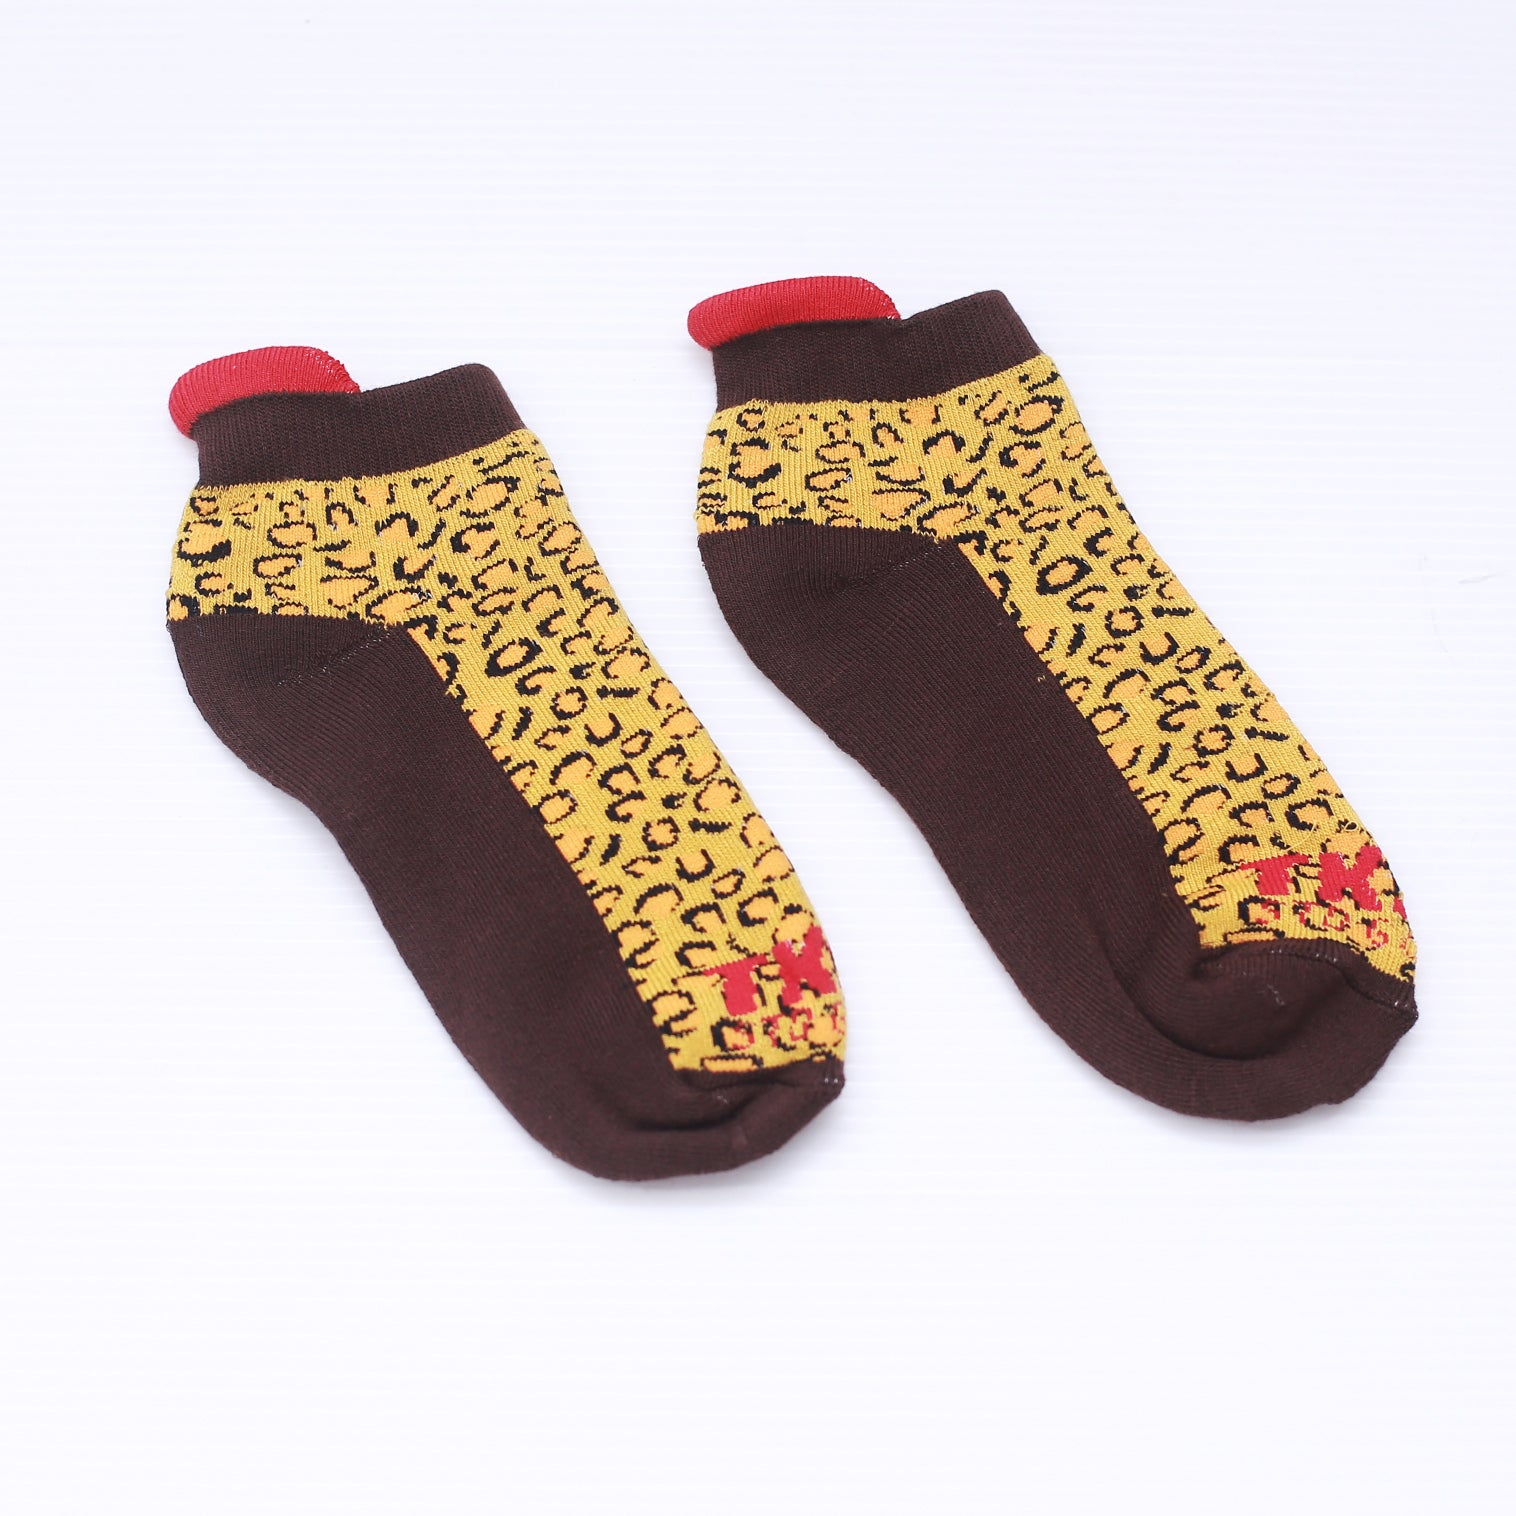 TKSB - Leopard Ankle Socks - Wheel Love Skateshop